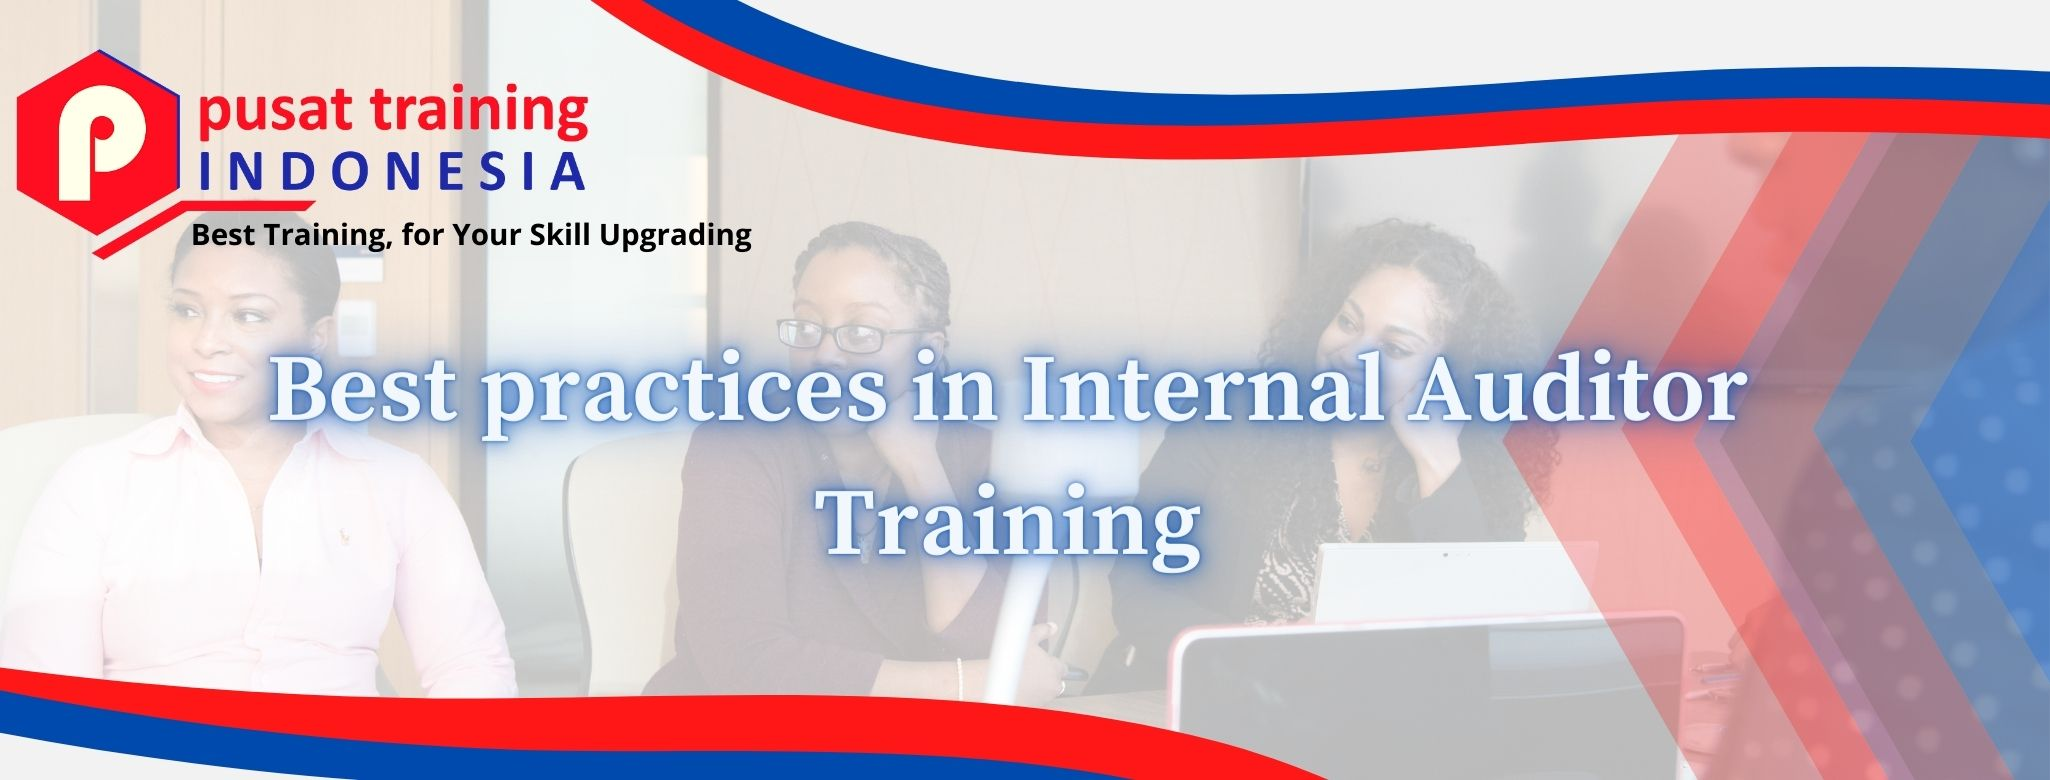 Best-practices-in-Internal-Auditor-Training